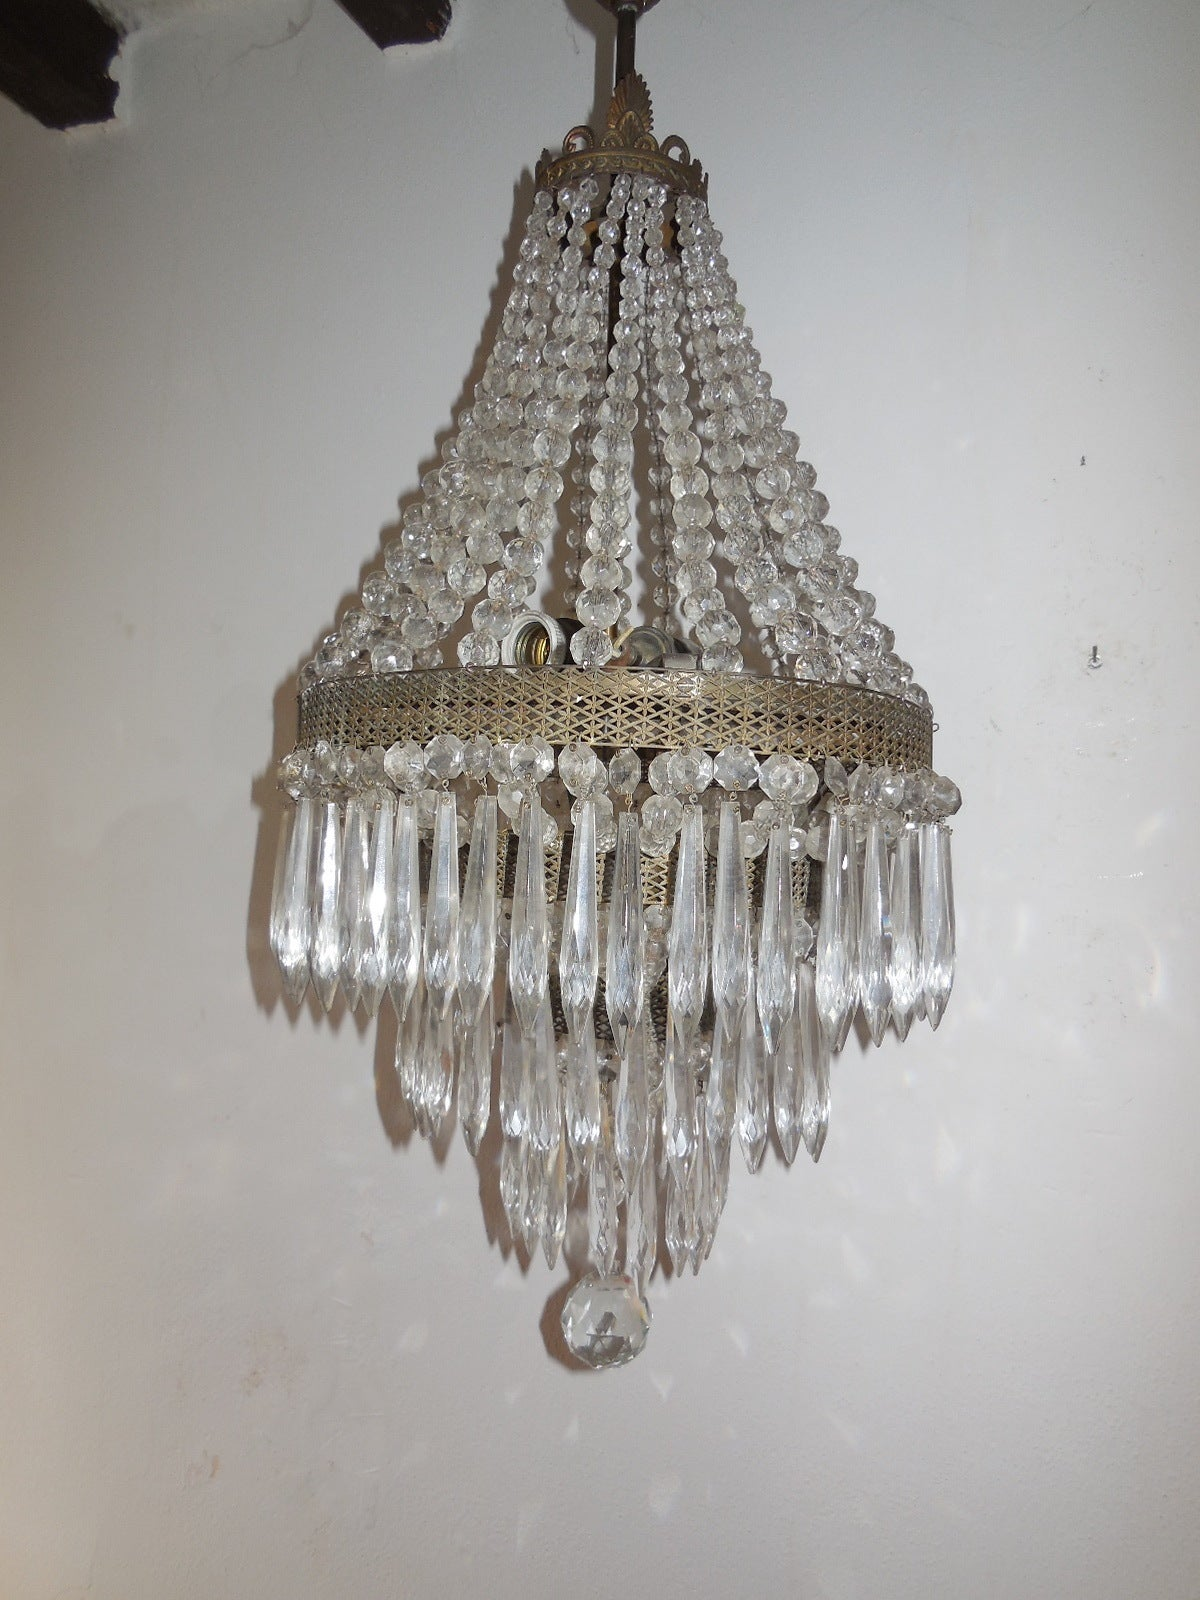 Huge French Oval Crystal Prisms Tiered Chandelier For Sale At 1stdibs